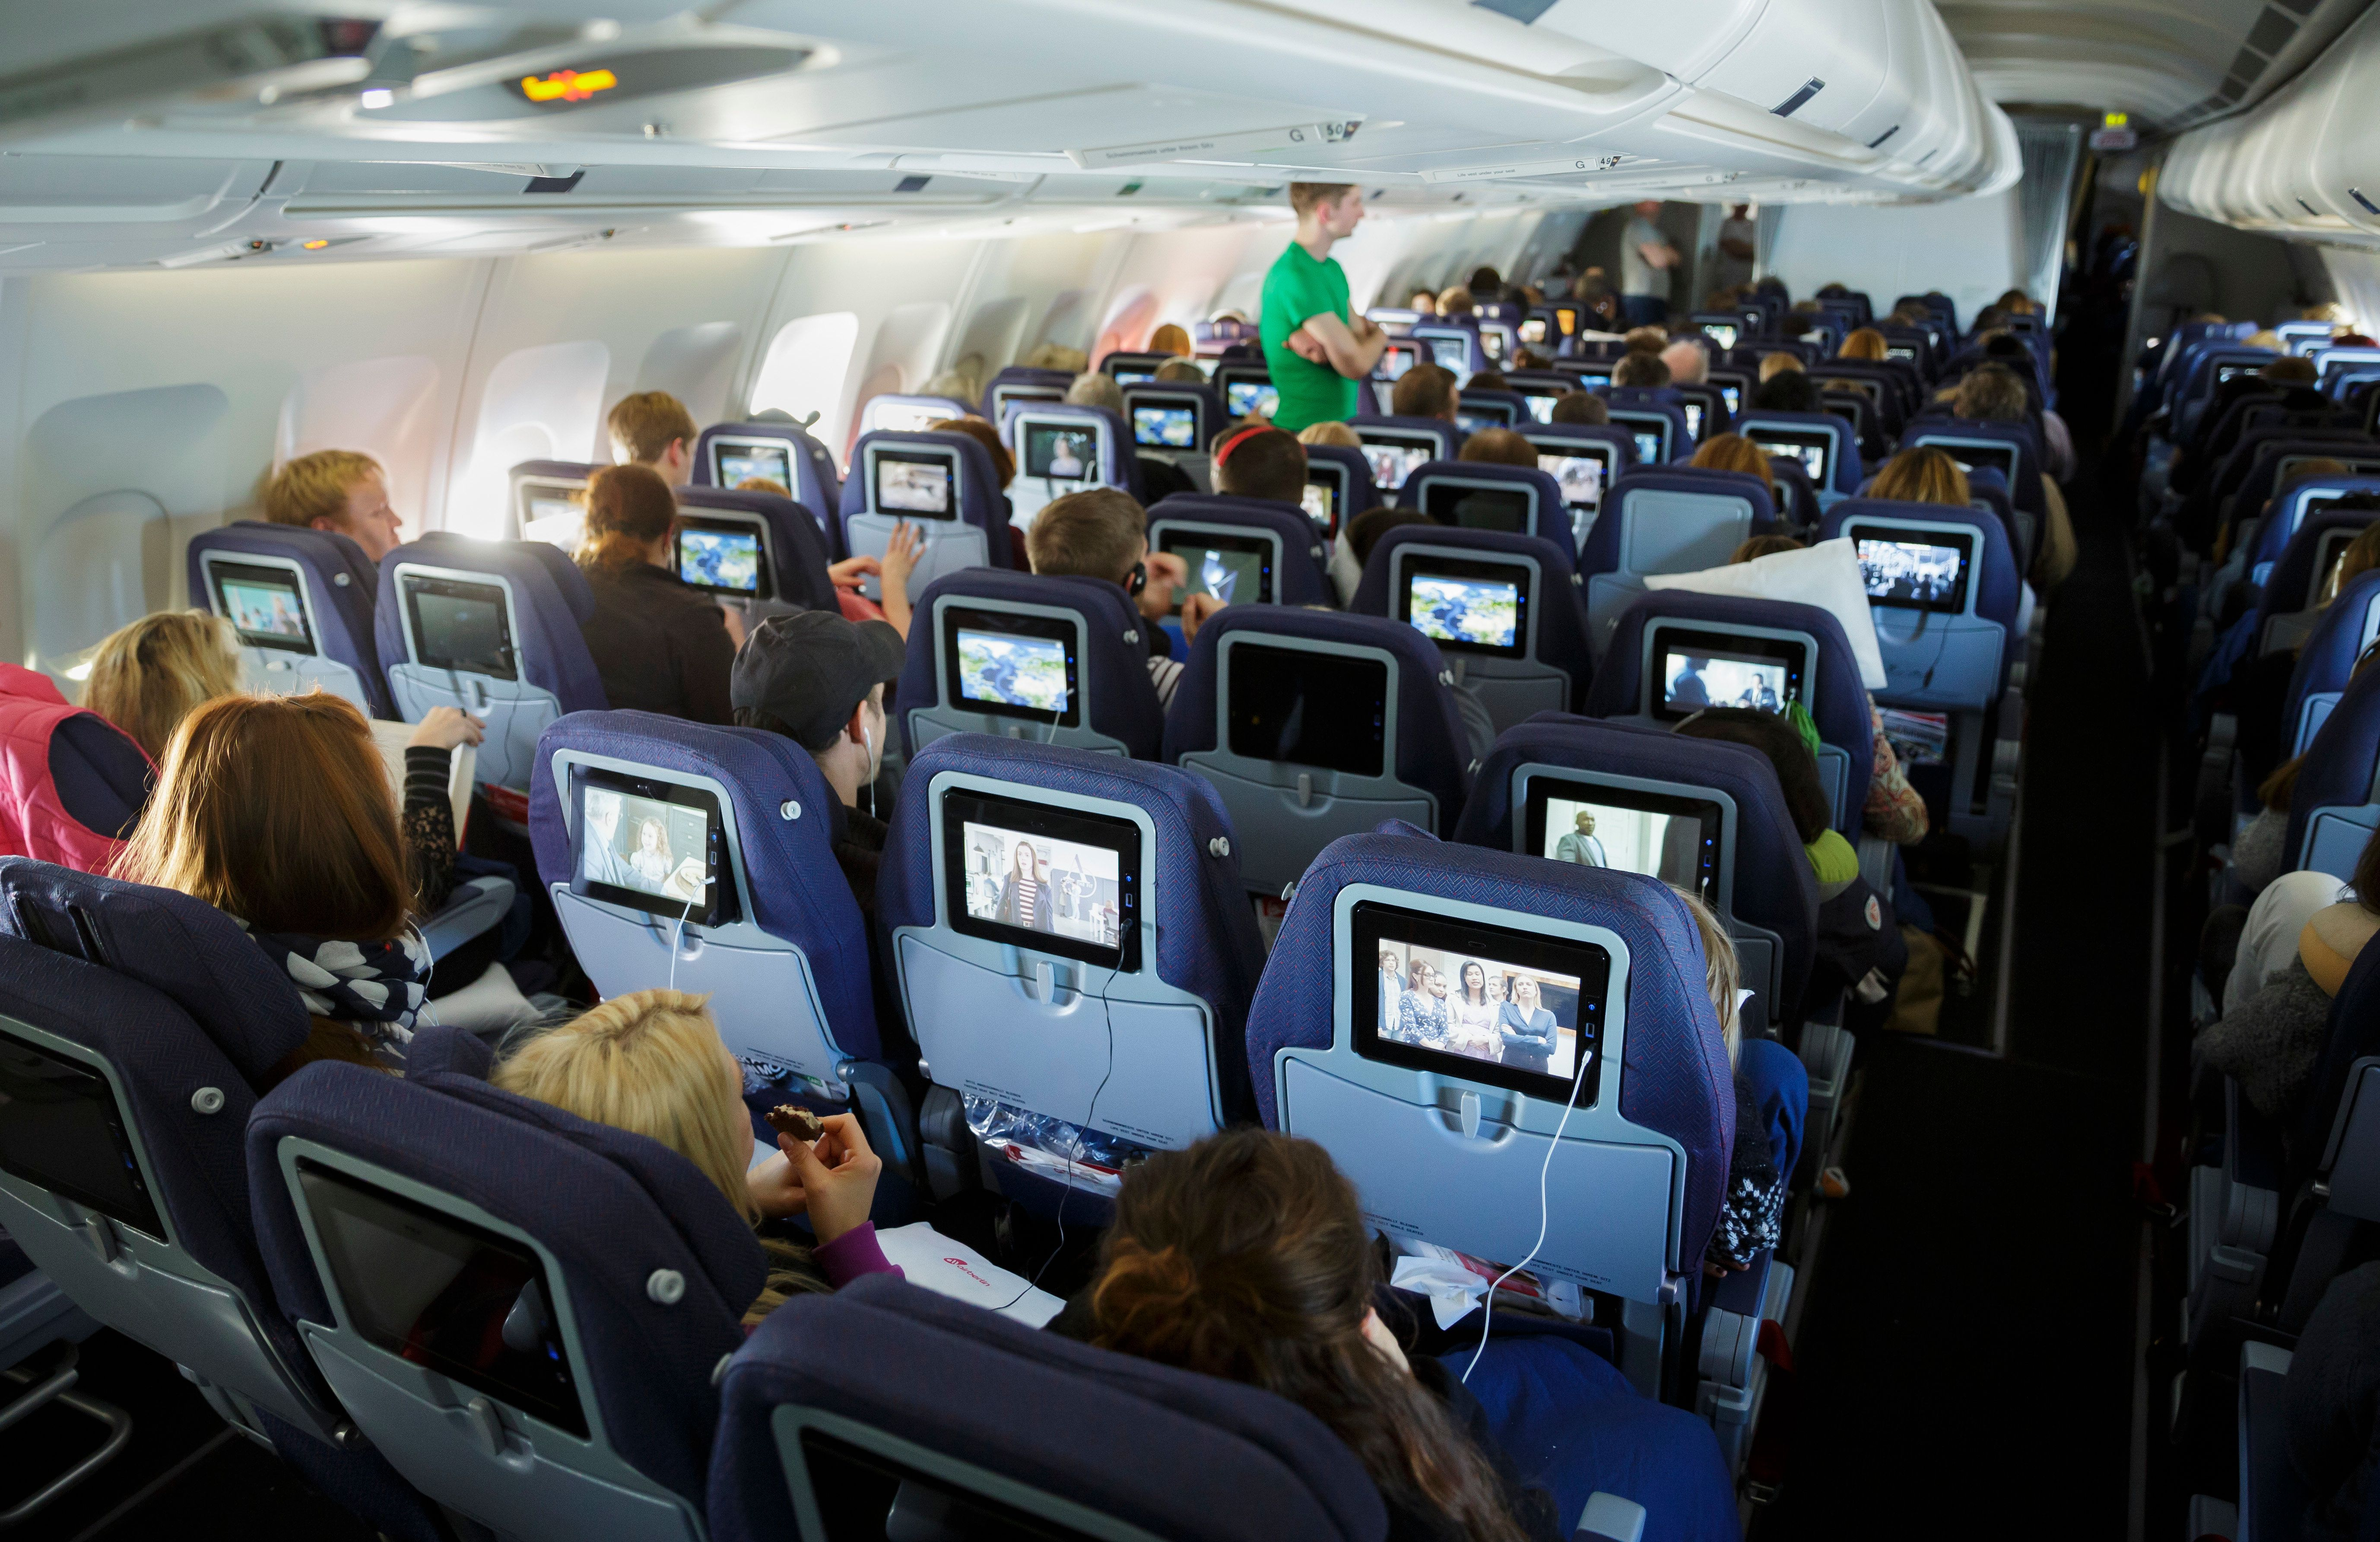 New York, United Sates of America - February 23: Passengers look at TV screens in Economy Class section in a plane on February 23, 2016 in Berlin, Germany. (Photo by Thomas Trutschel/Photothek via Getty Images)